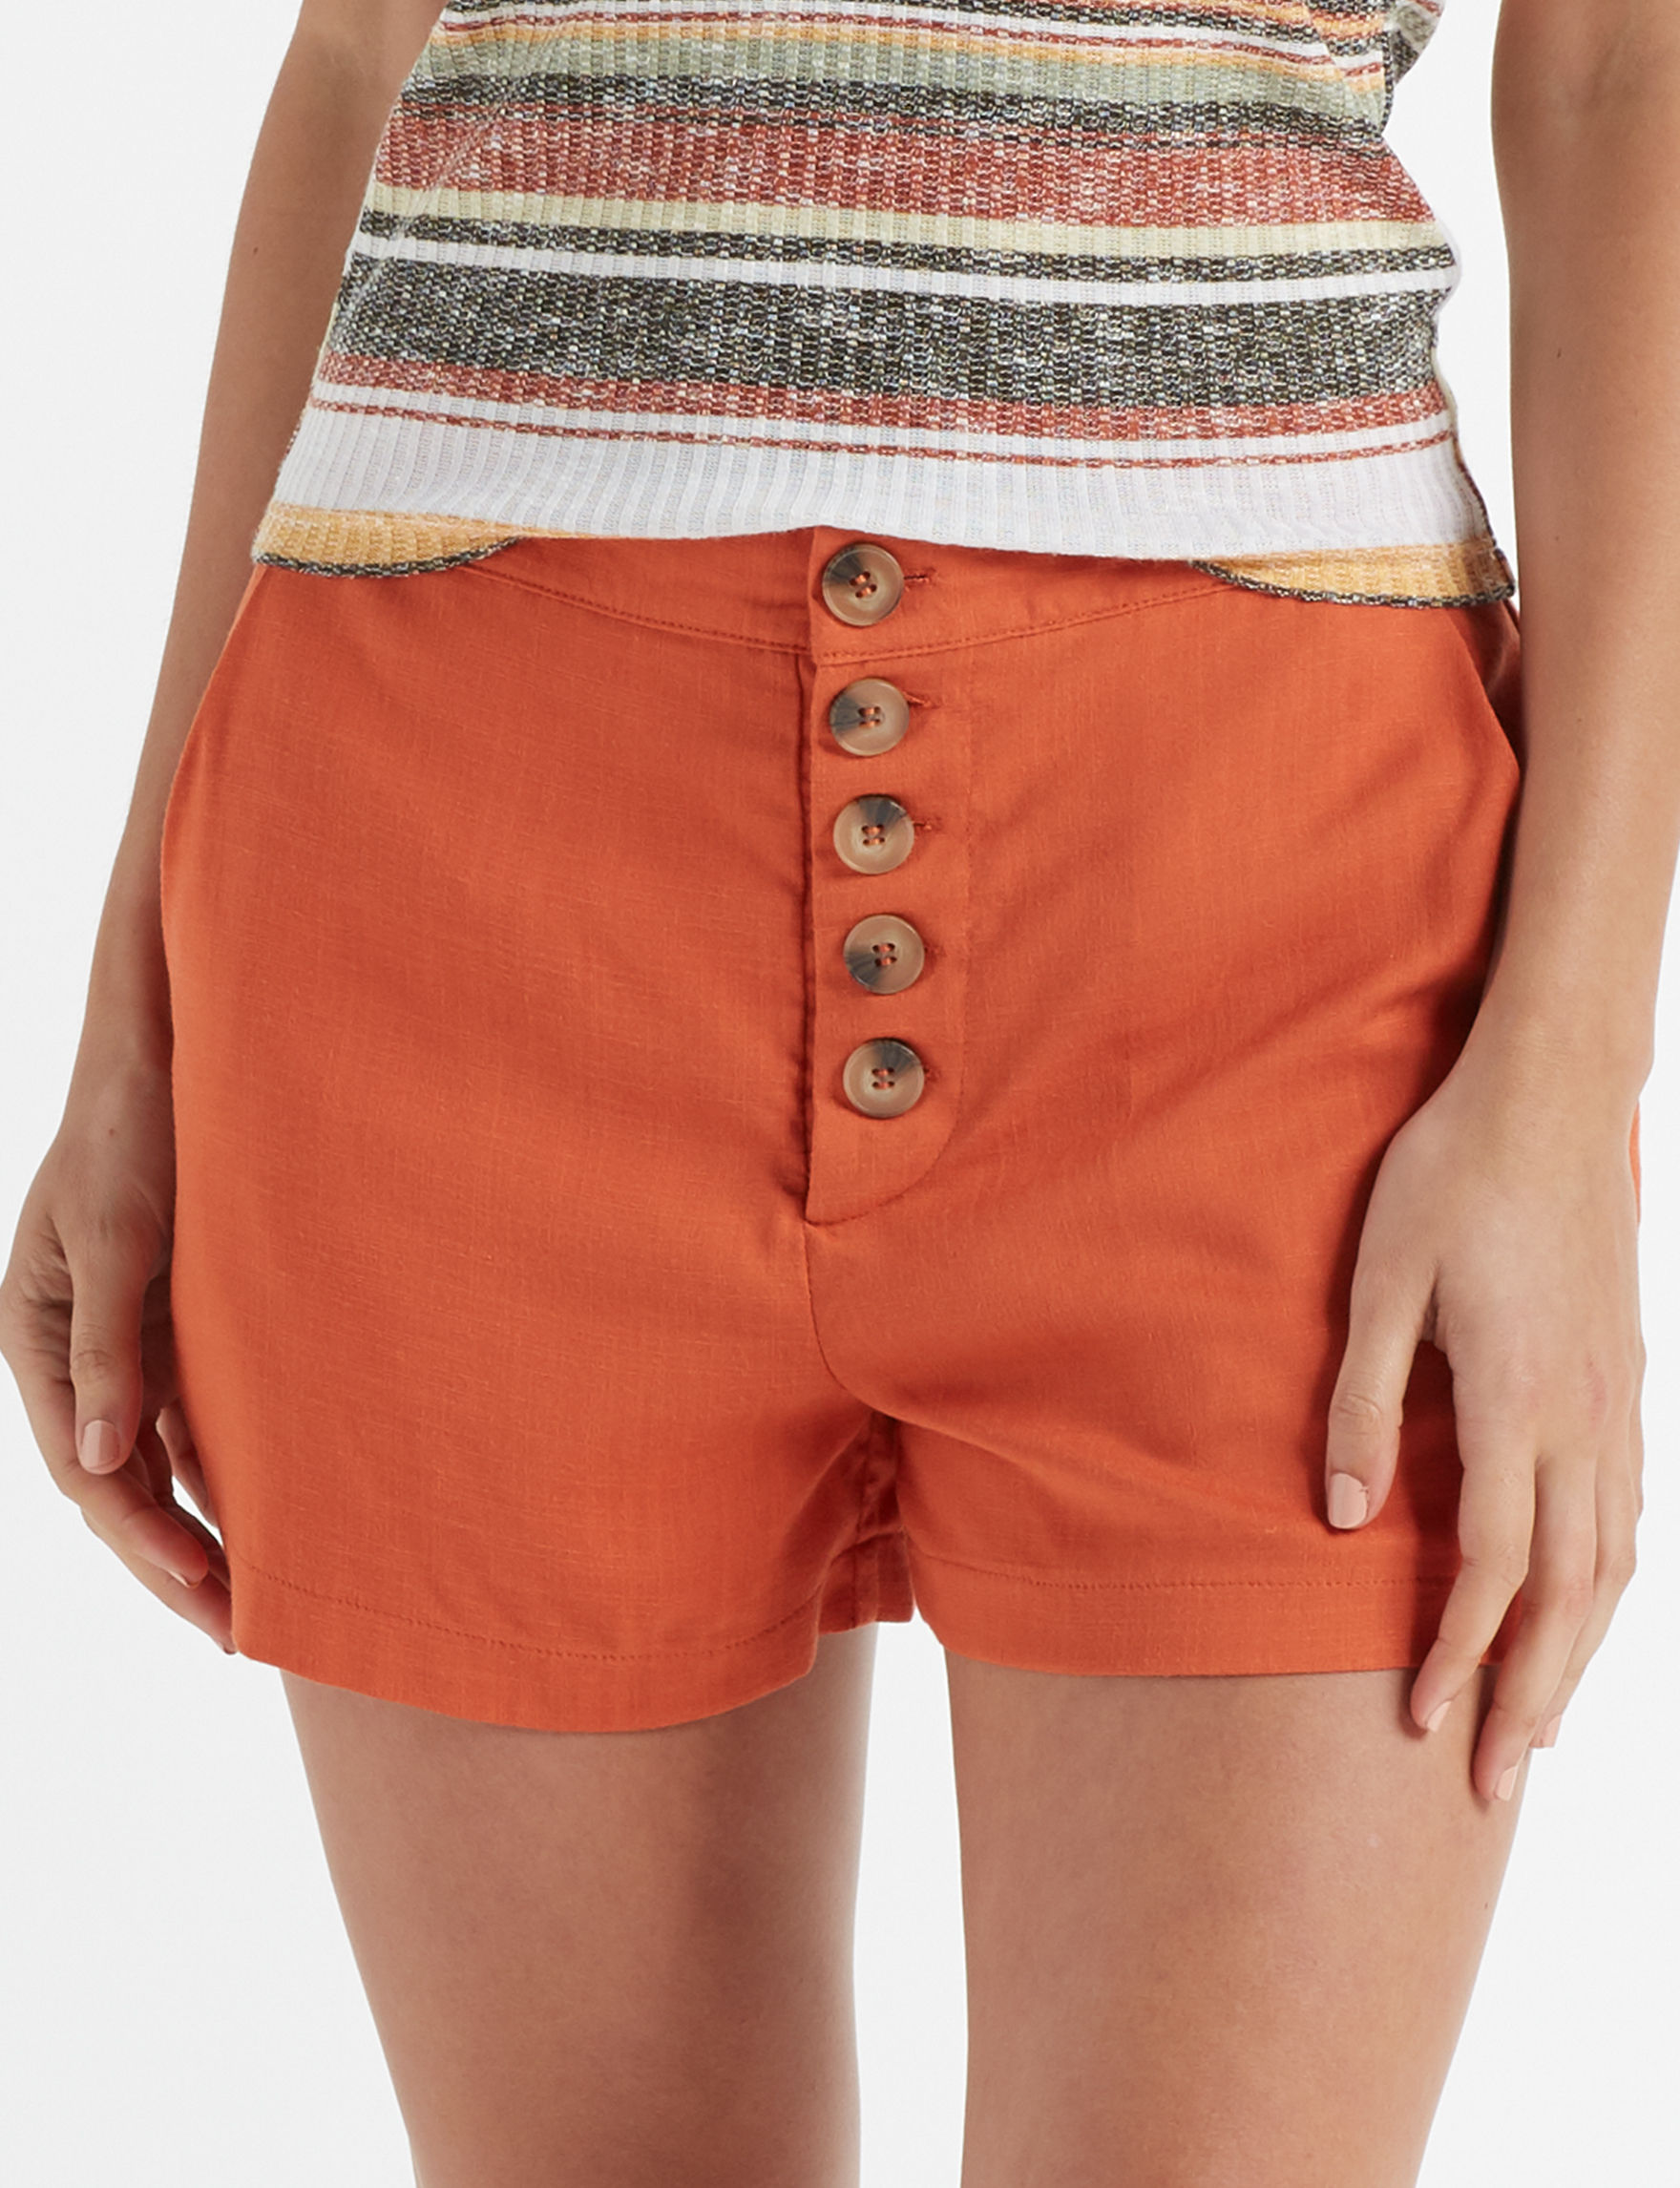 Charmed Hearts Orange Soft Shorts